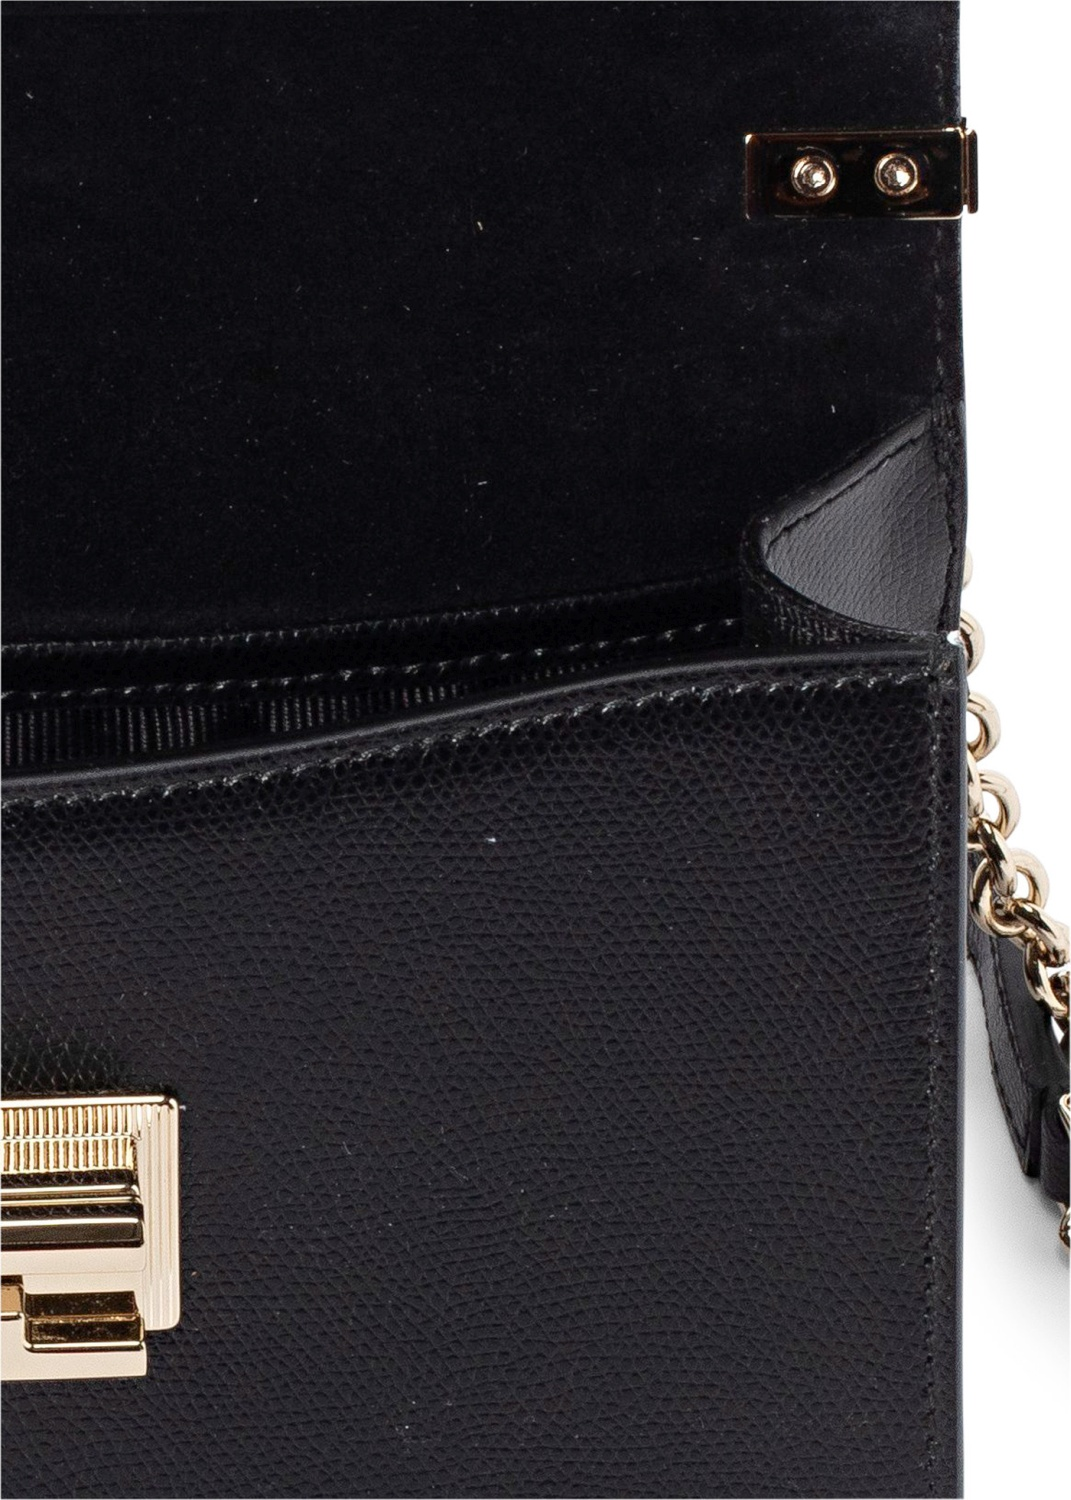 FURLA 1927 MINI CROSSBODY 20 image number 3